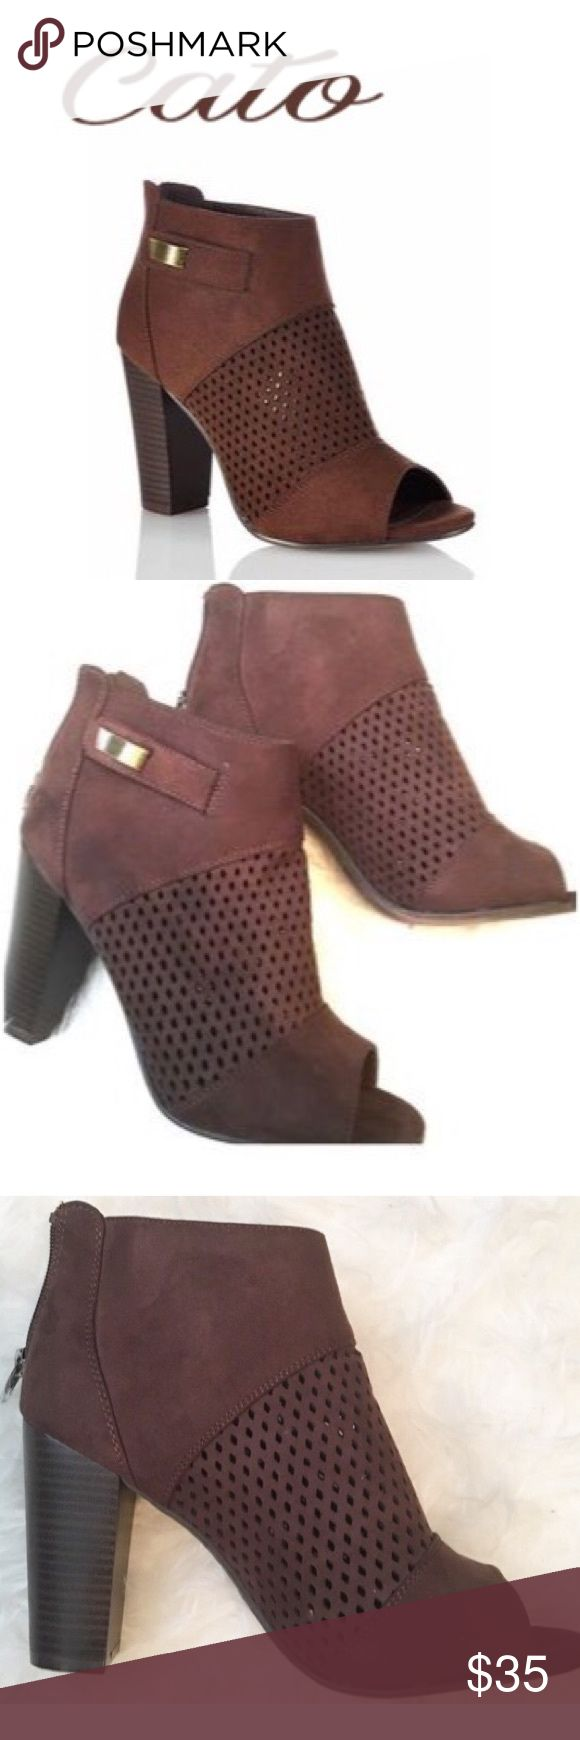 """✨Cato Brown Peep Toe Booties✨ ✨A perfect pair of peep toe booties. Great with dresses, shorts and jeans. Perfect for a night out of just a stroll through the city. A 4"""" heal. Worn them just ones✨ Cato Shoes Ankle Boots & Booties"""